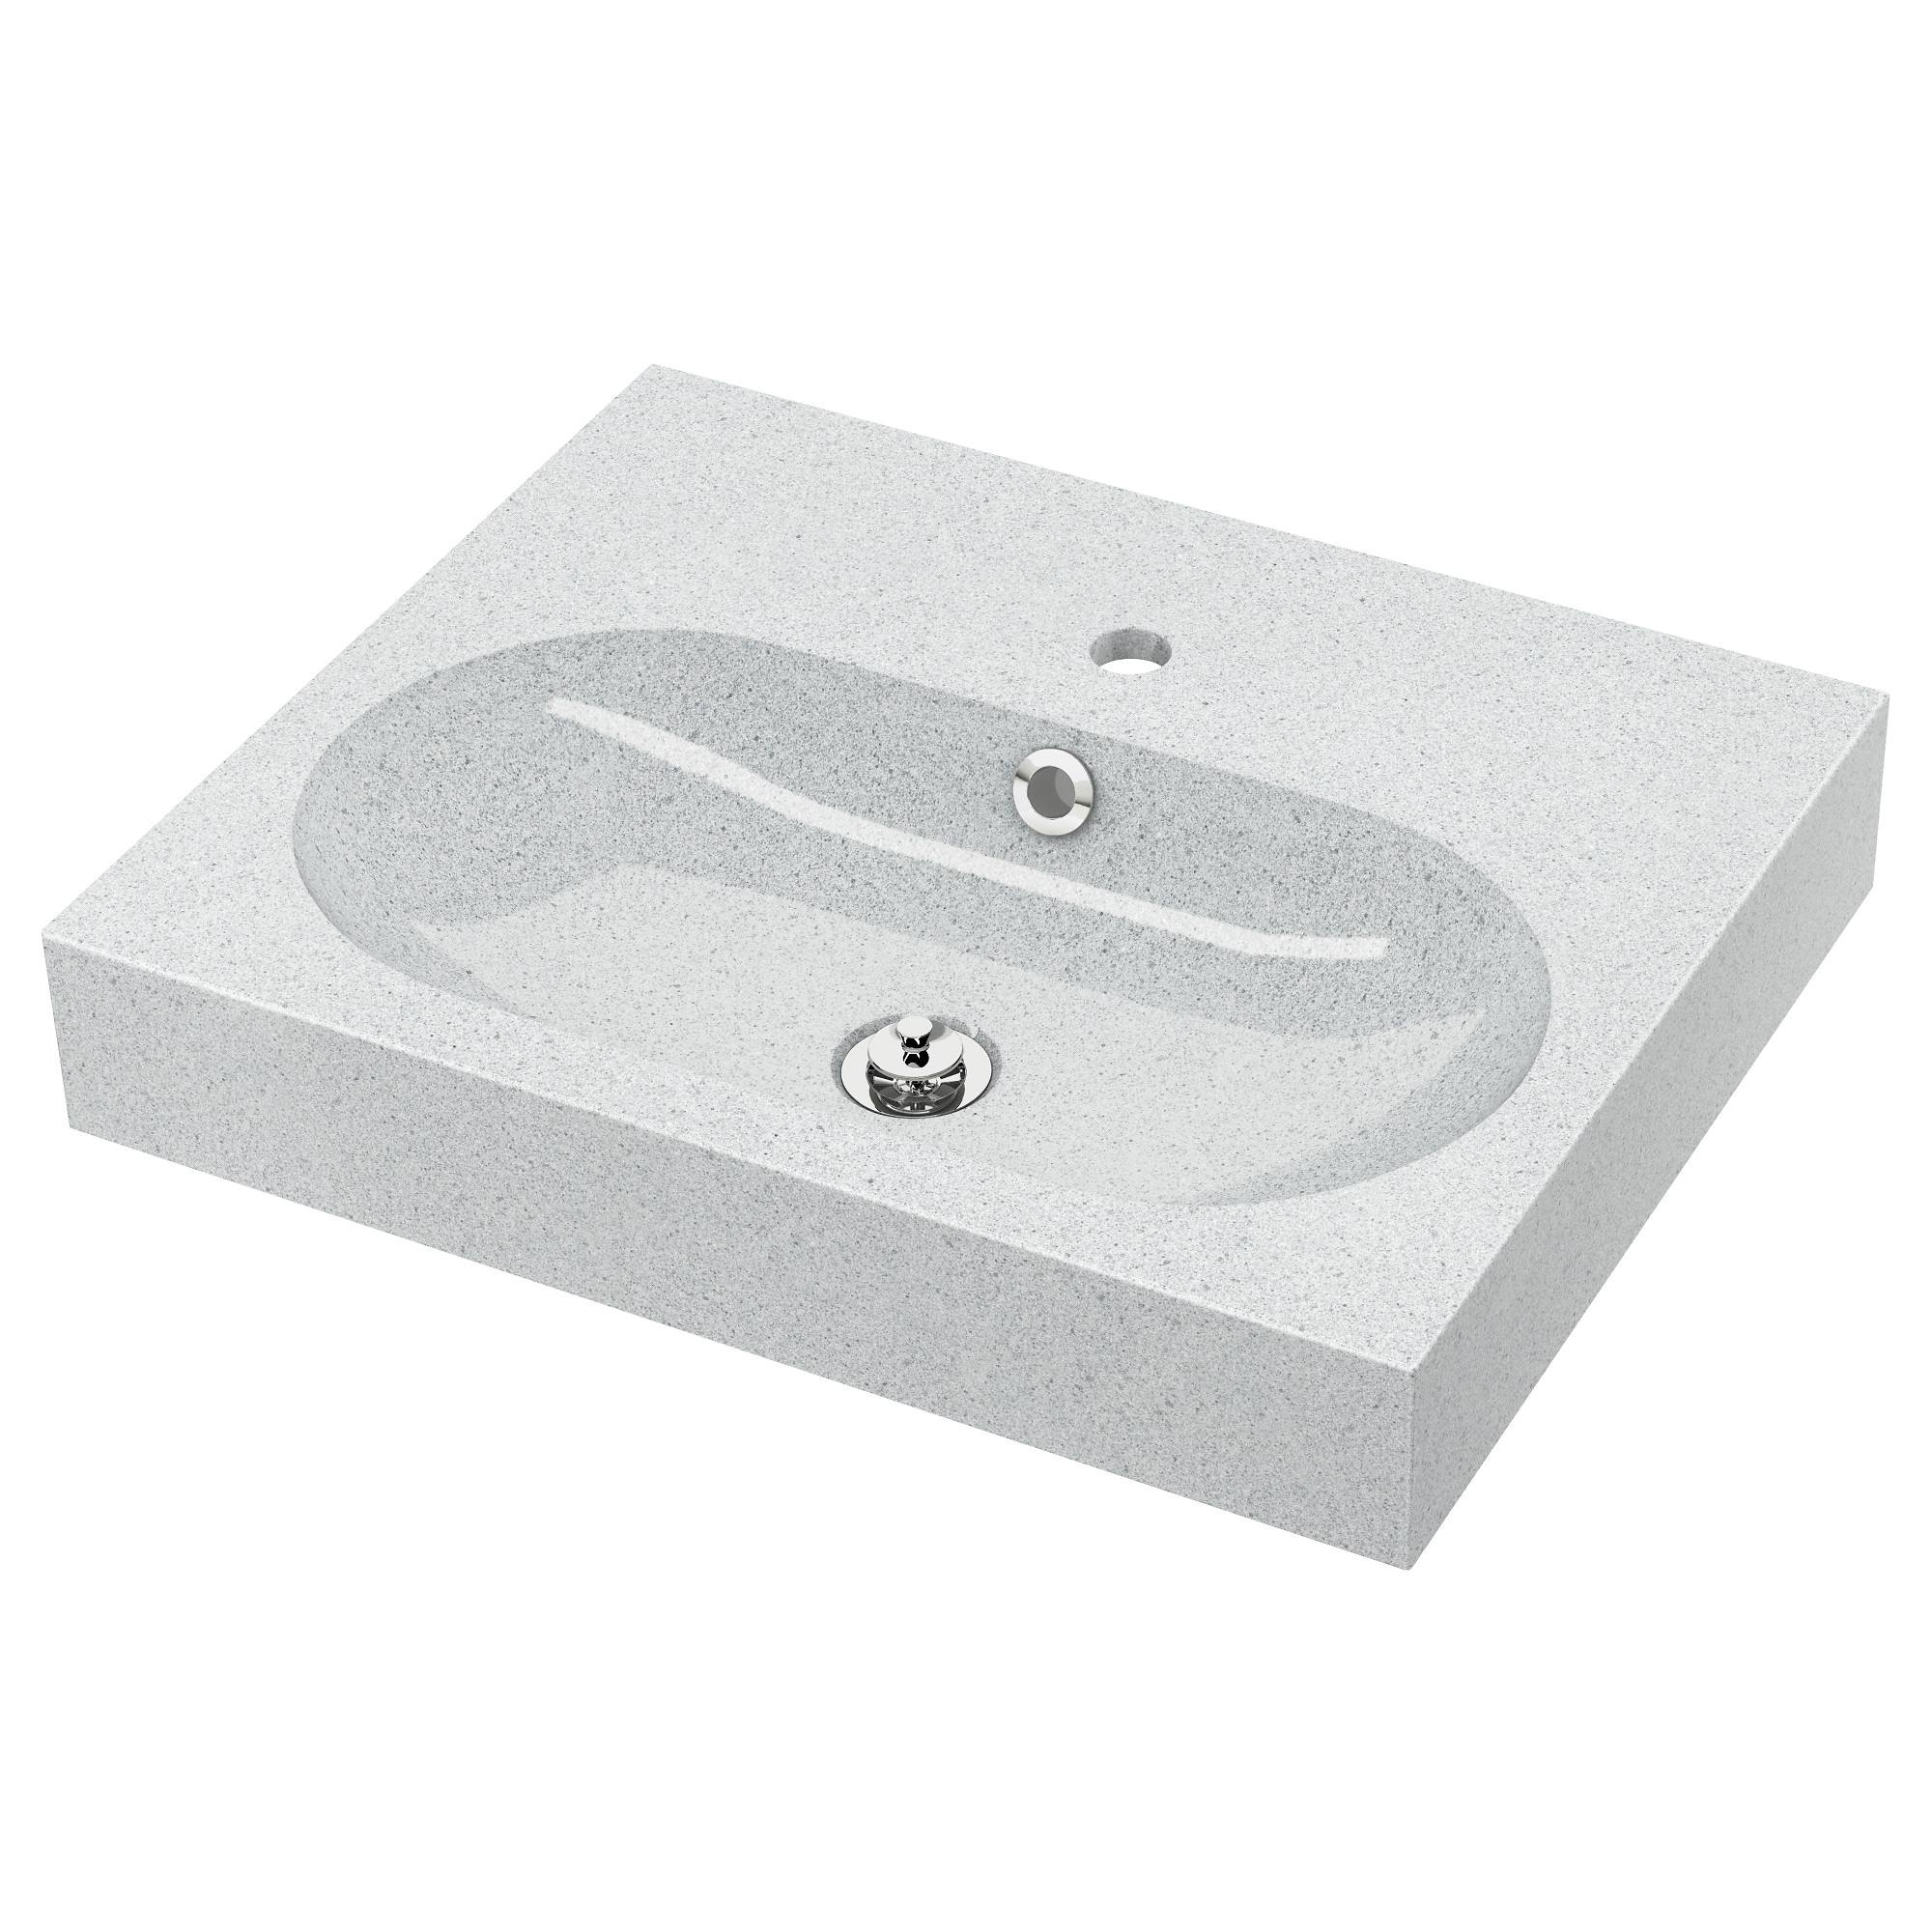 Awesome brviken lavabo gris clair pierre largeur cm for Evier resine rond